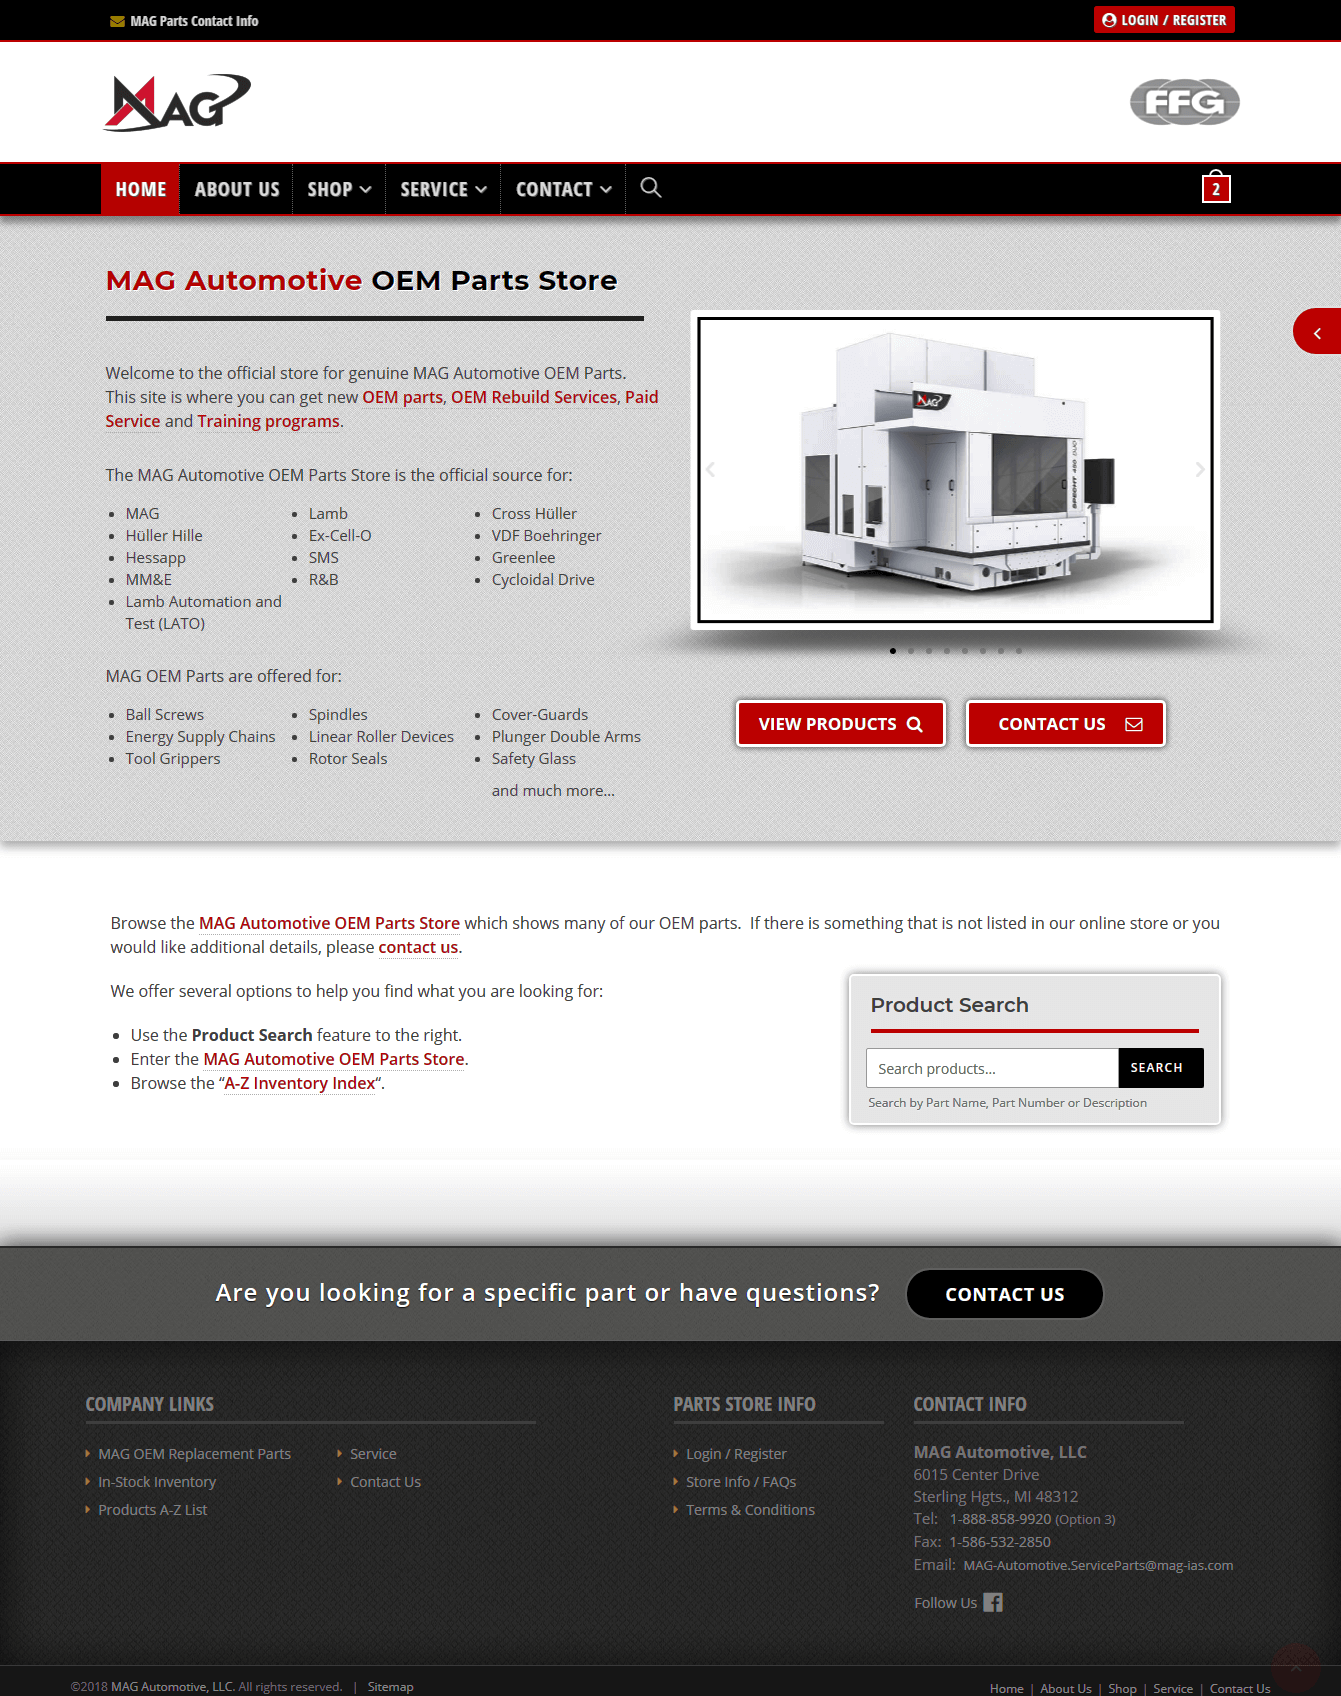 MAG Automotive - OEM Parts Store - Website Design & Development by Abke Design